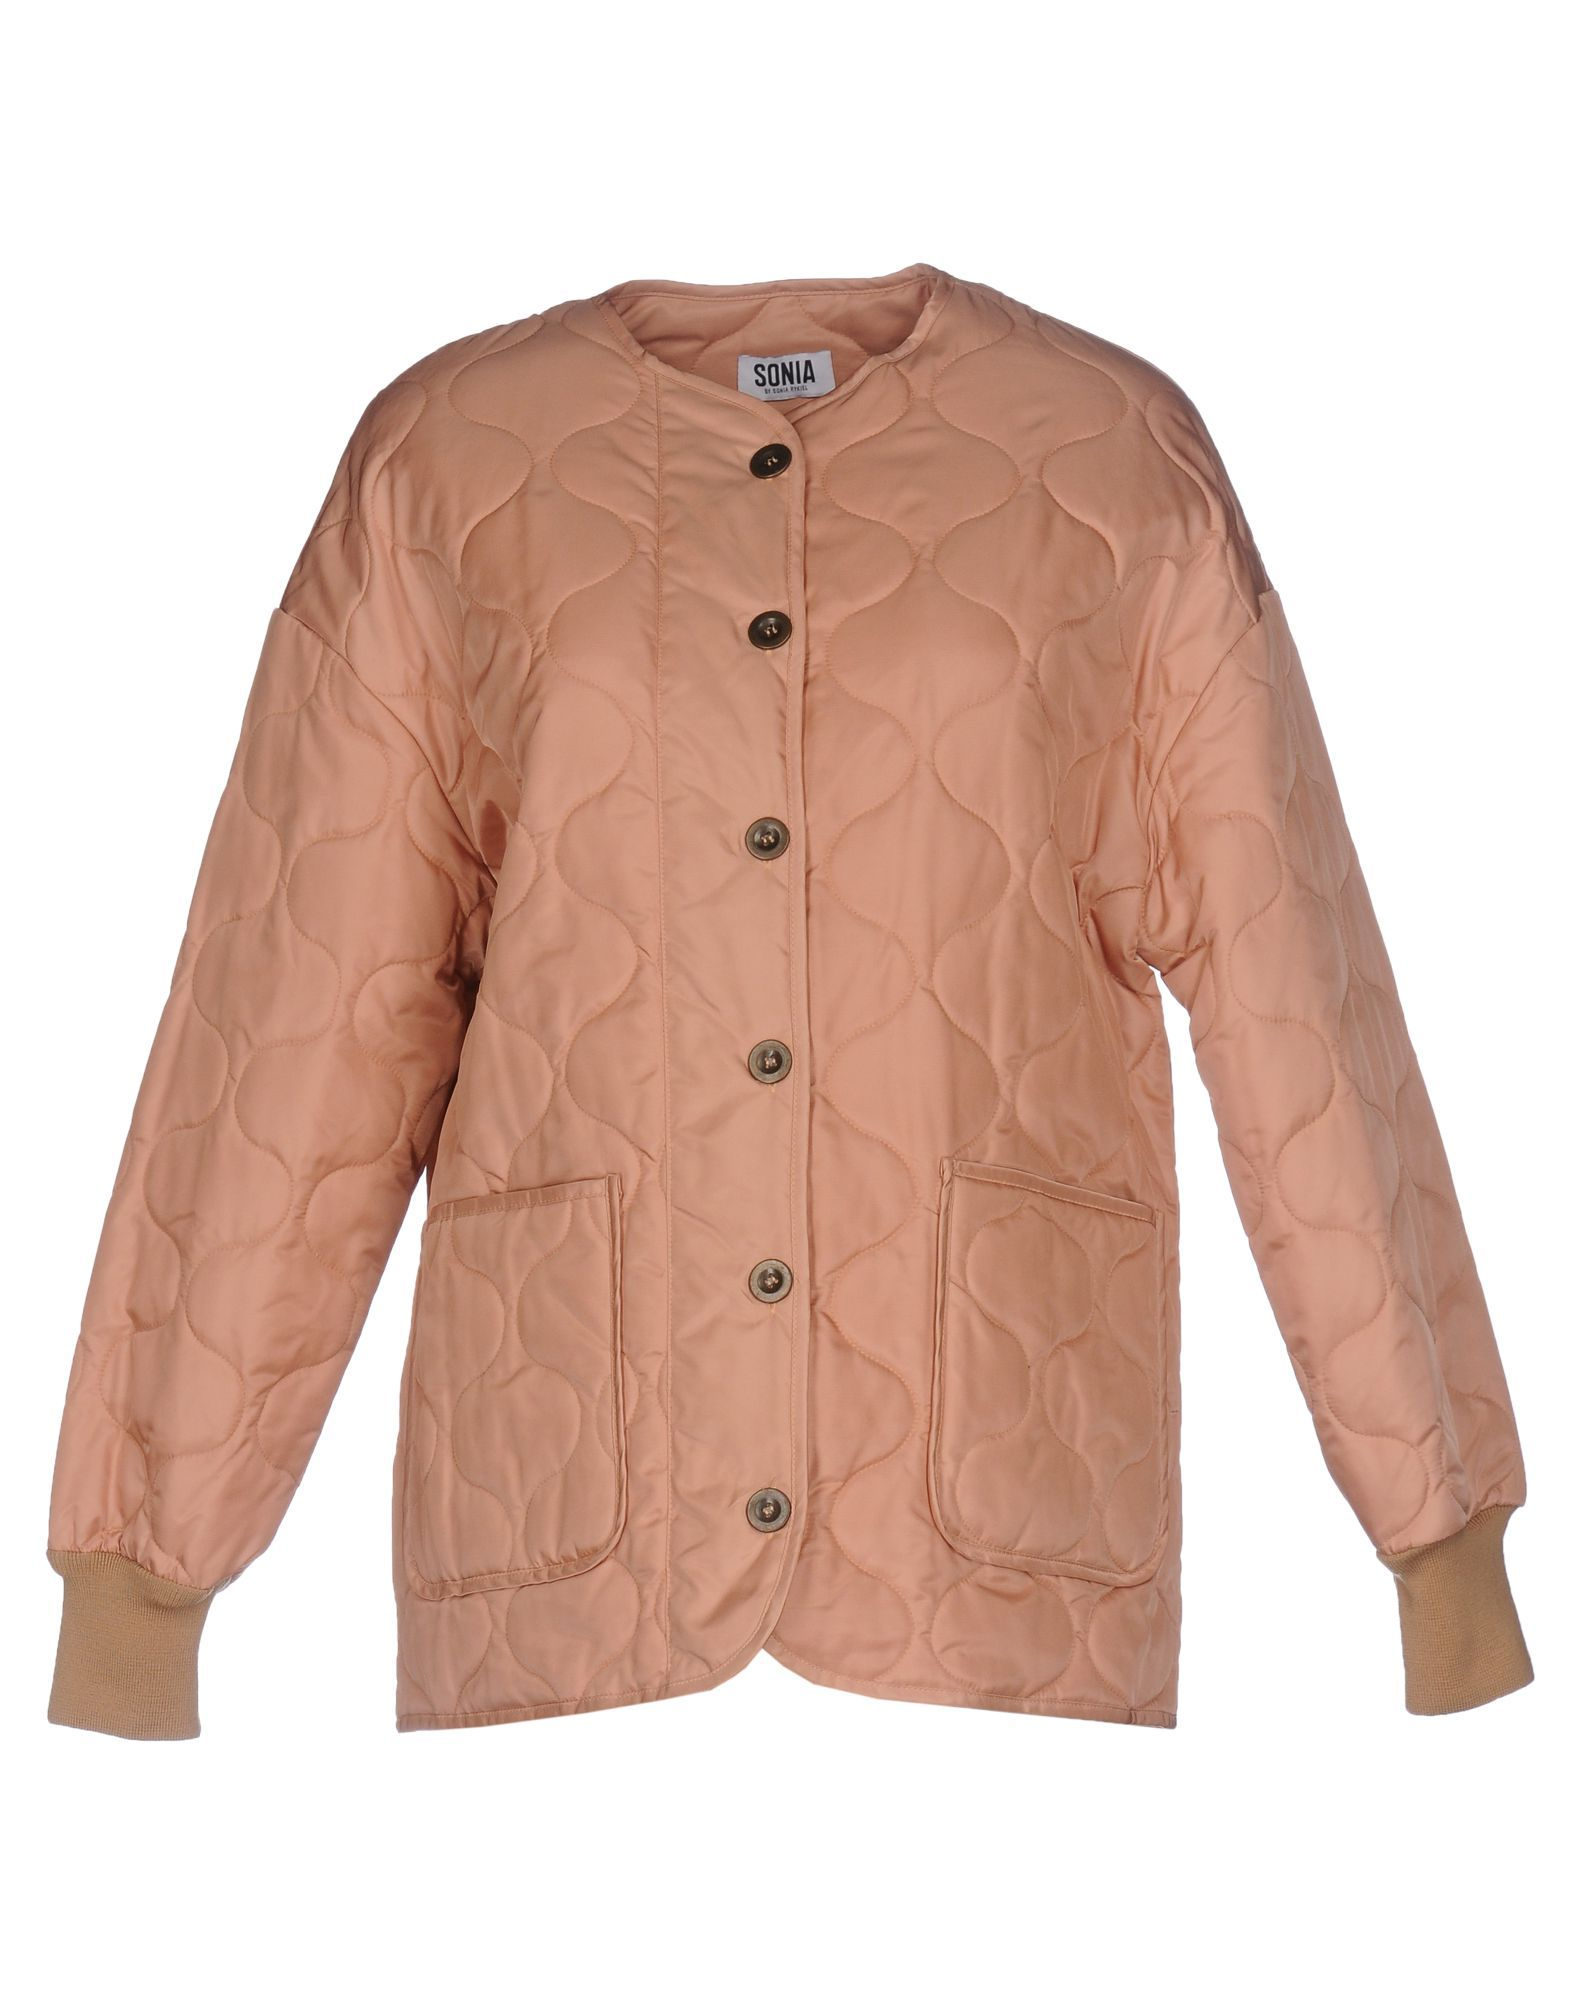 Sonia By Sonia Rykiel Pastel Pink Quilted Jacket